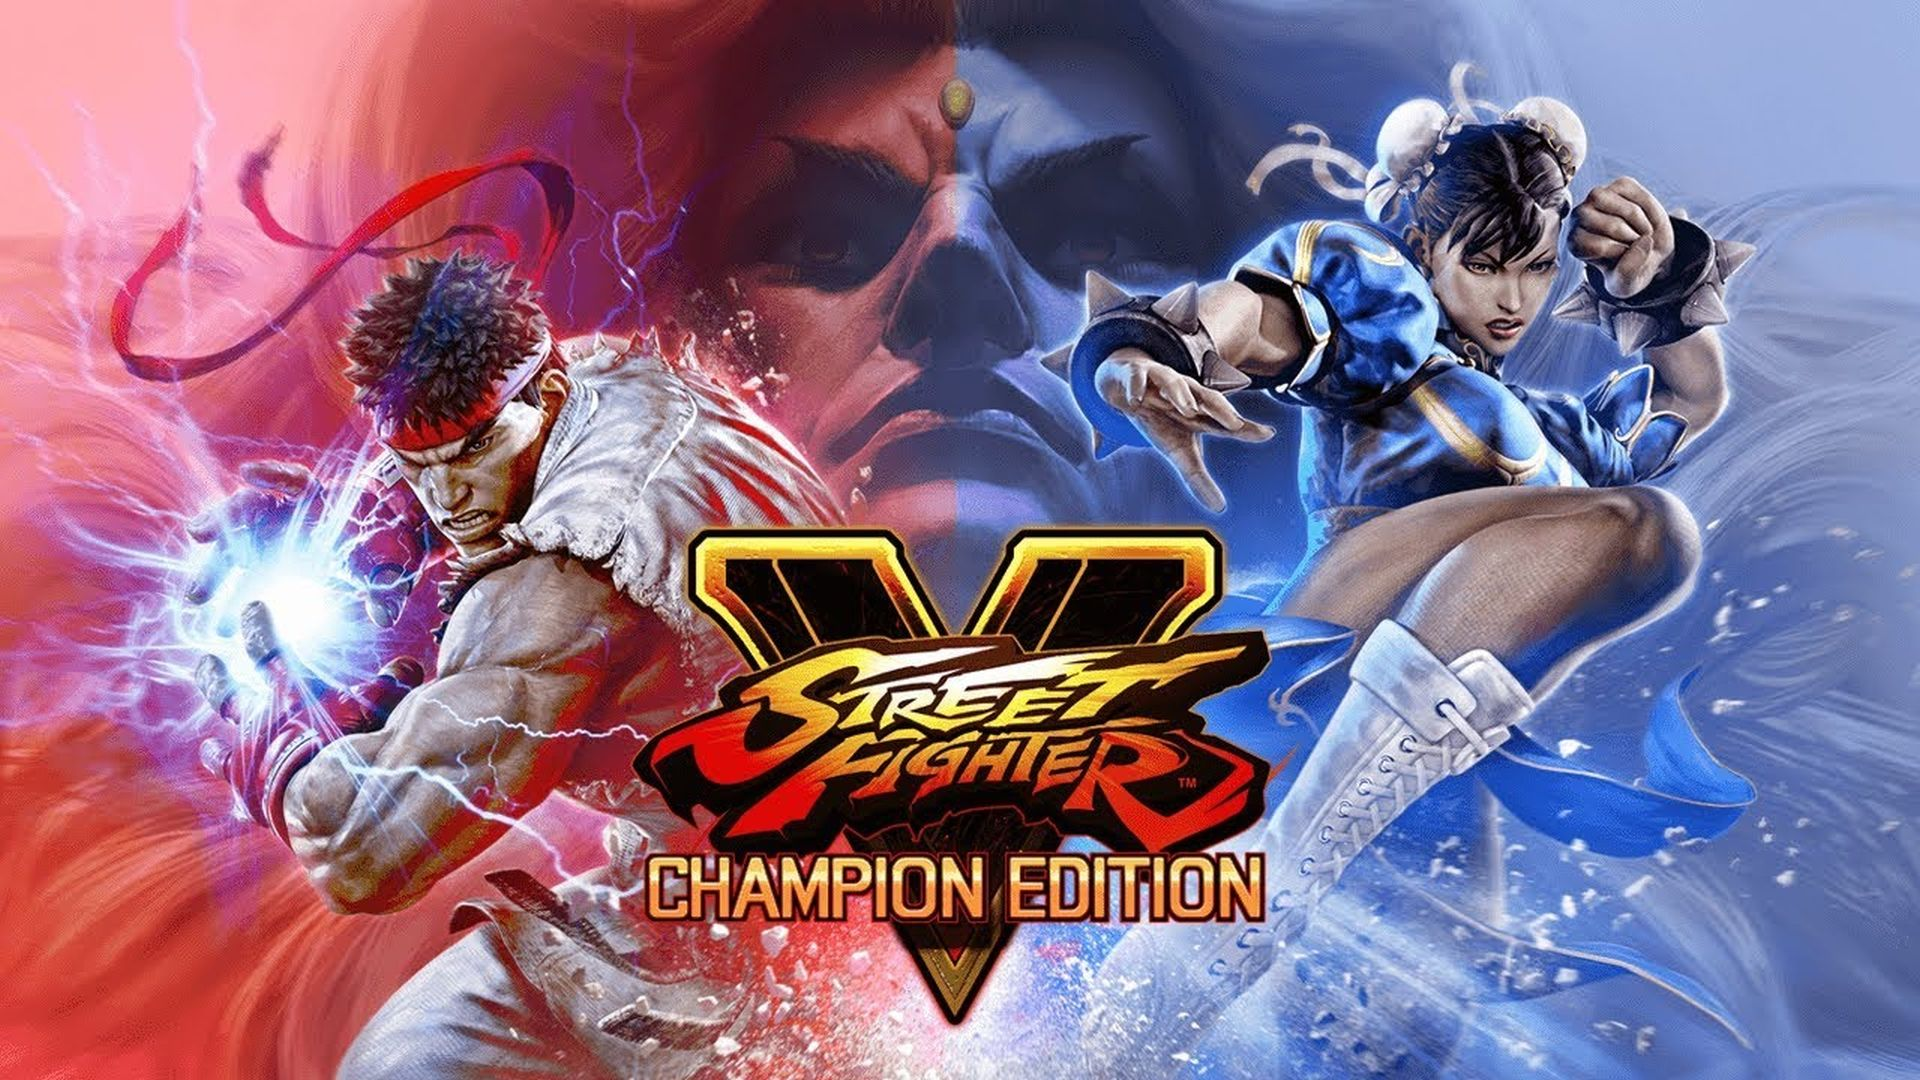 Street Fighter 5 Champion Edition